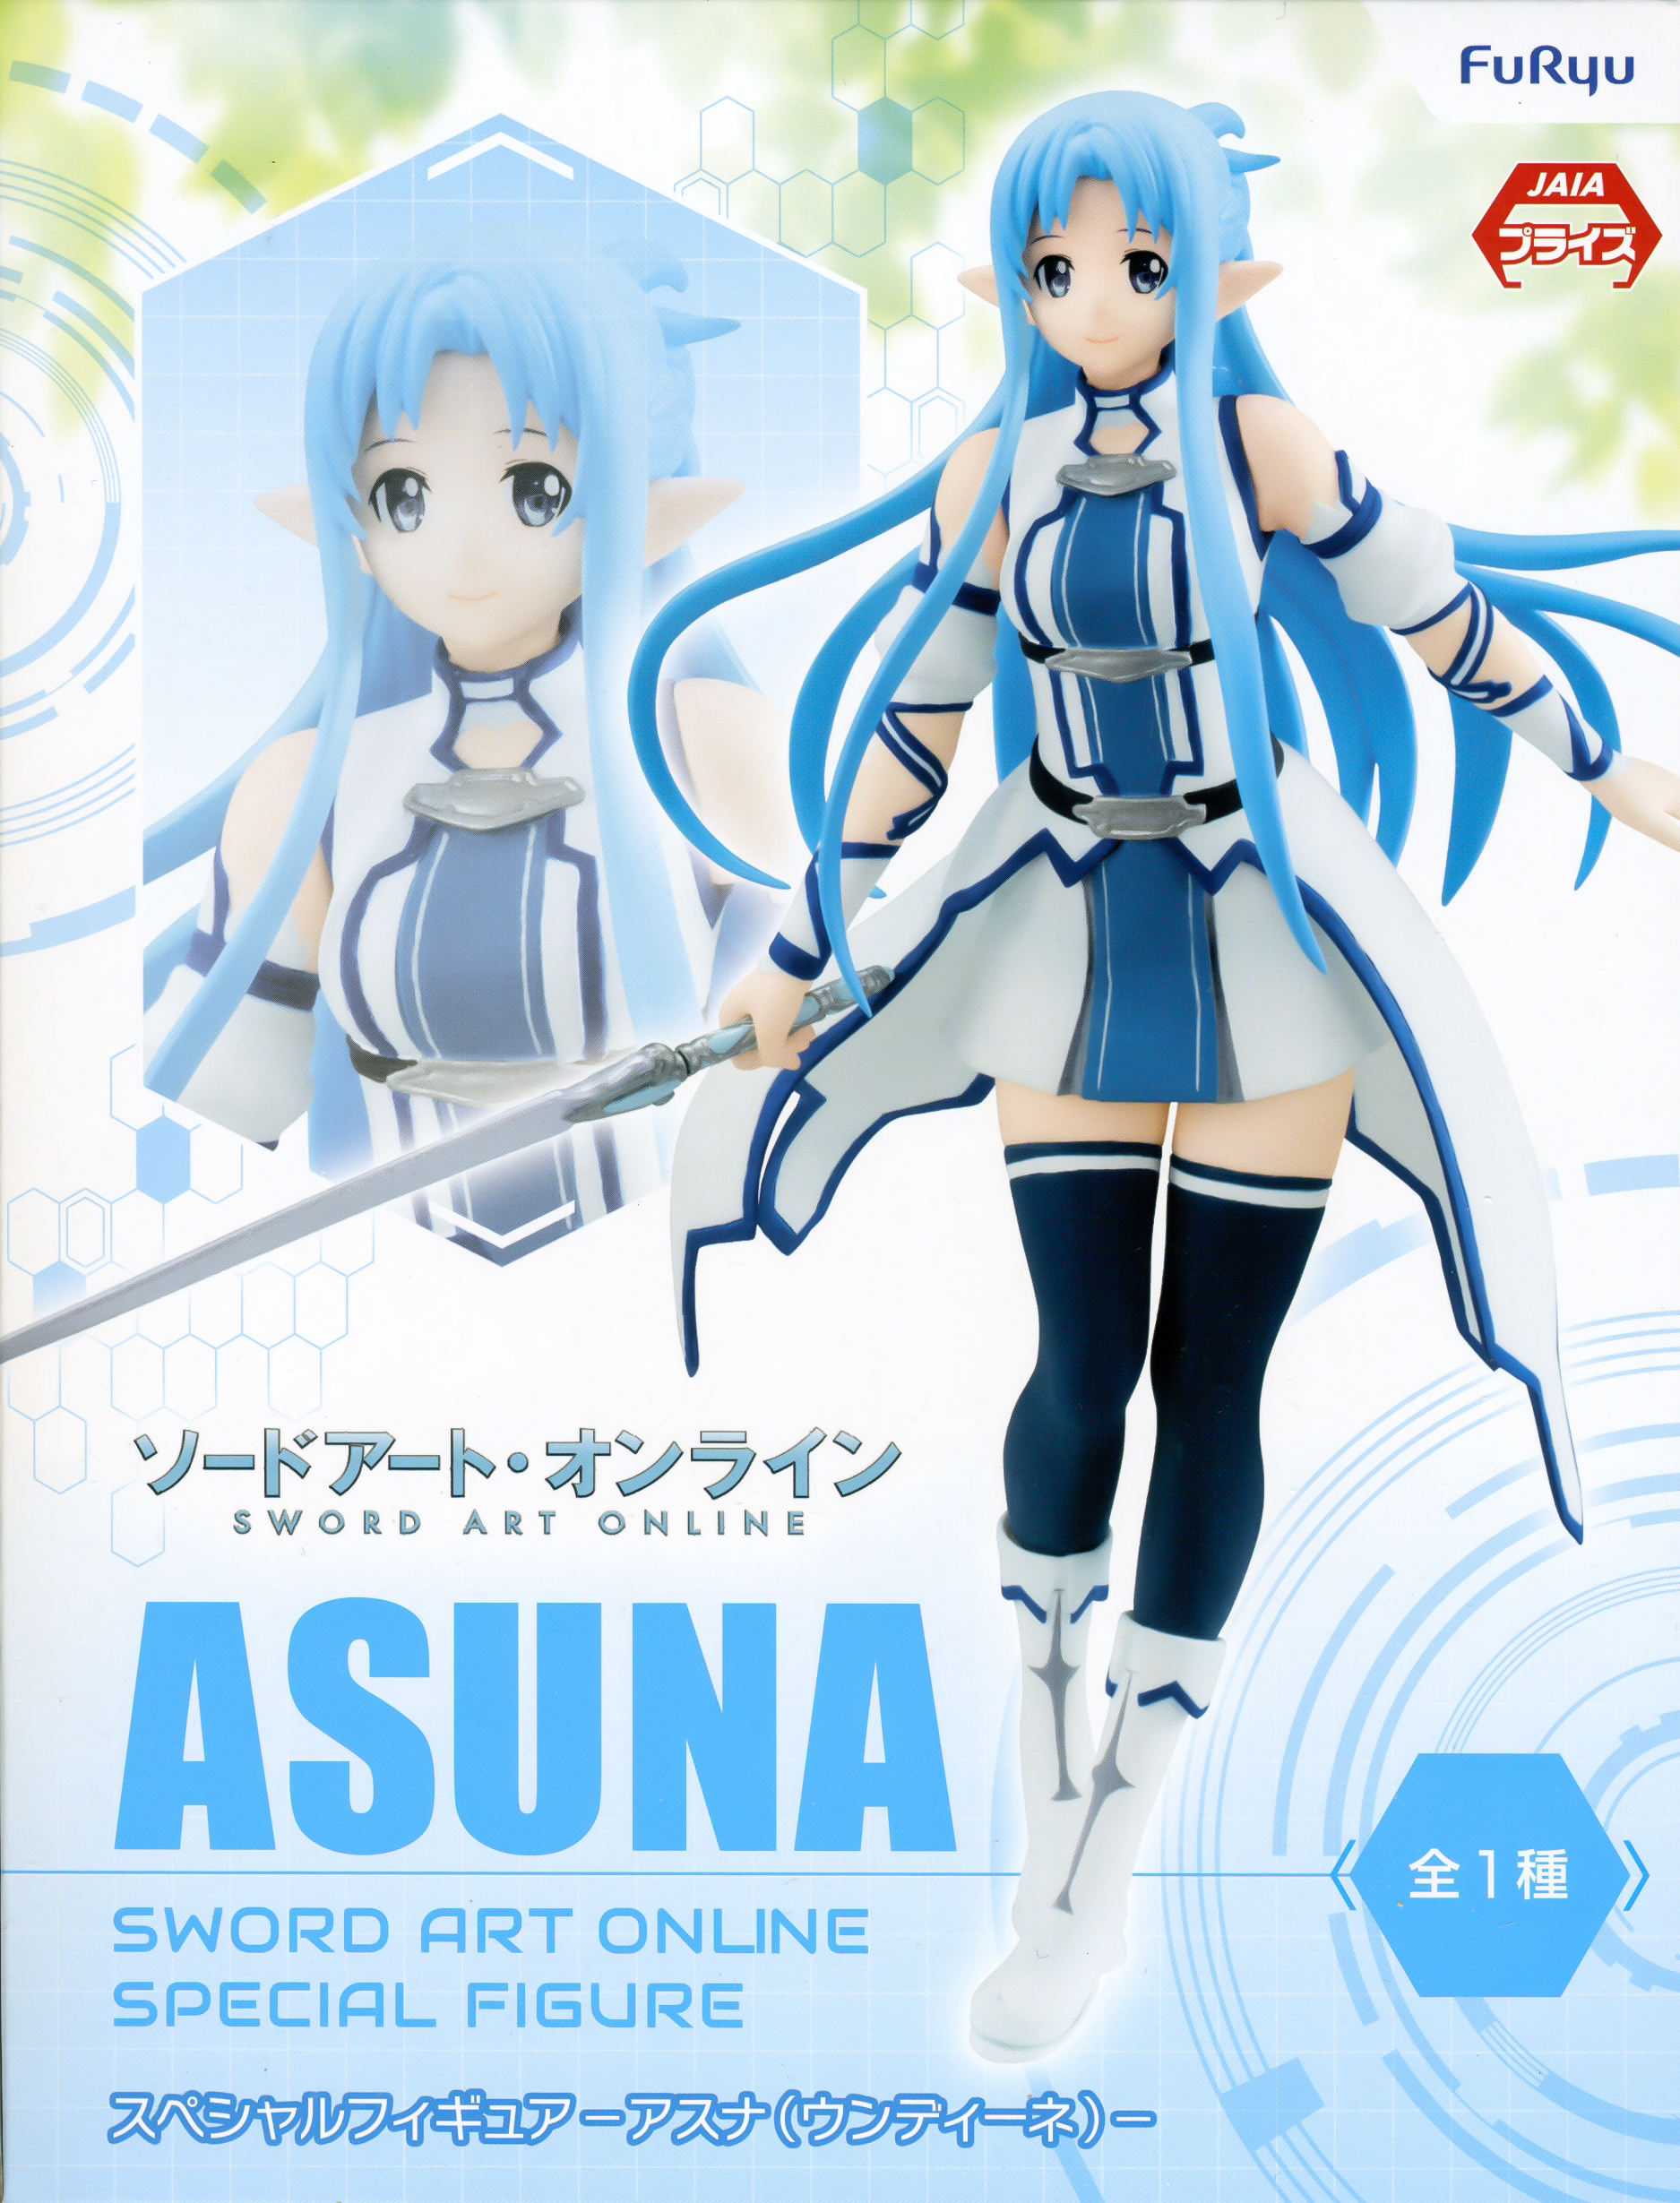 Anime Black Friday Sale, Asuna Figure, Sword Art Online